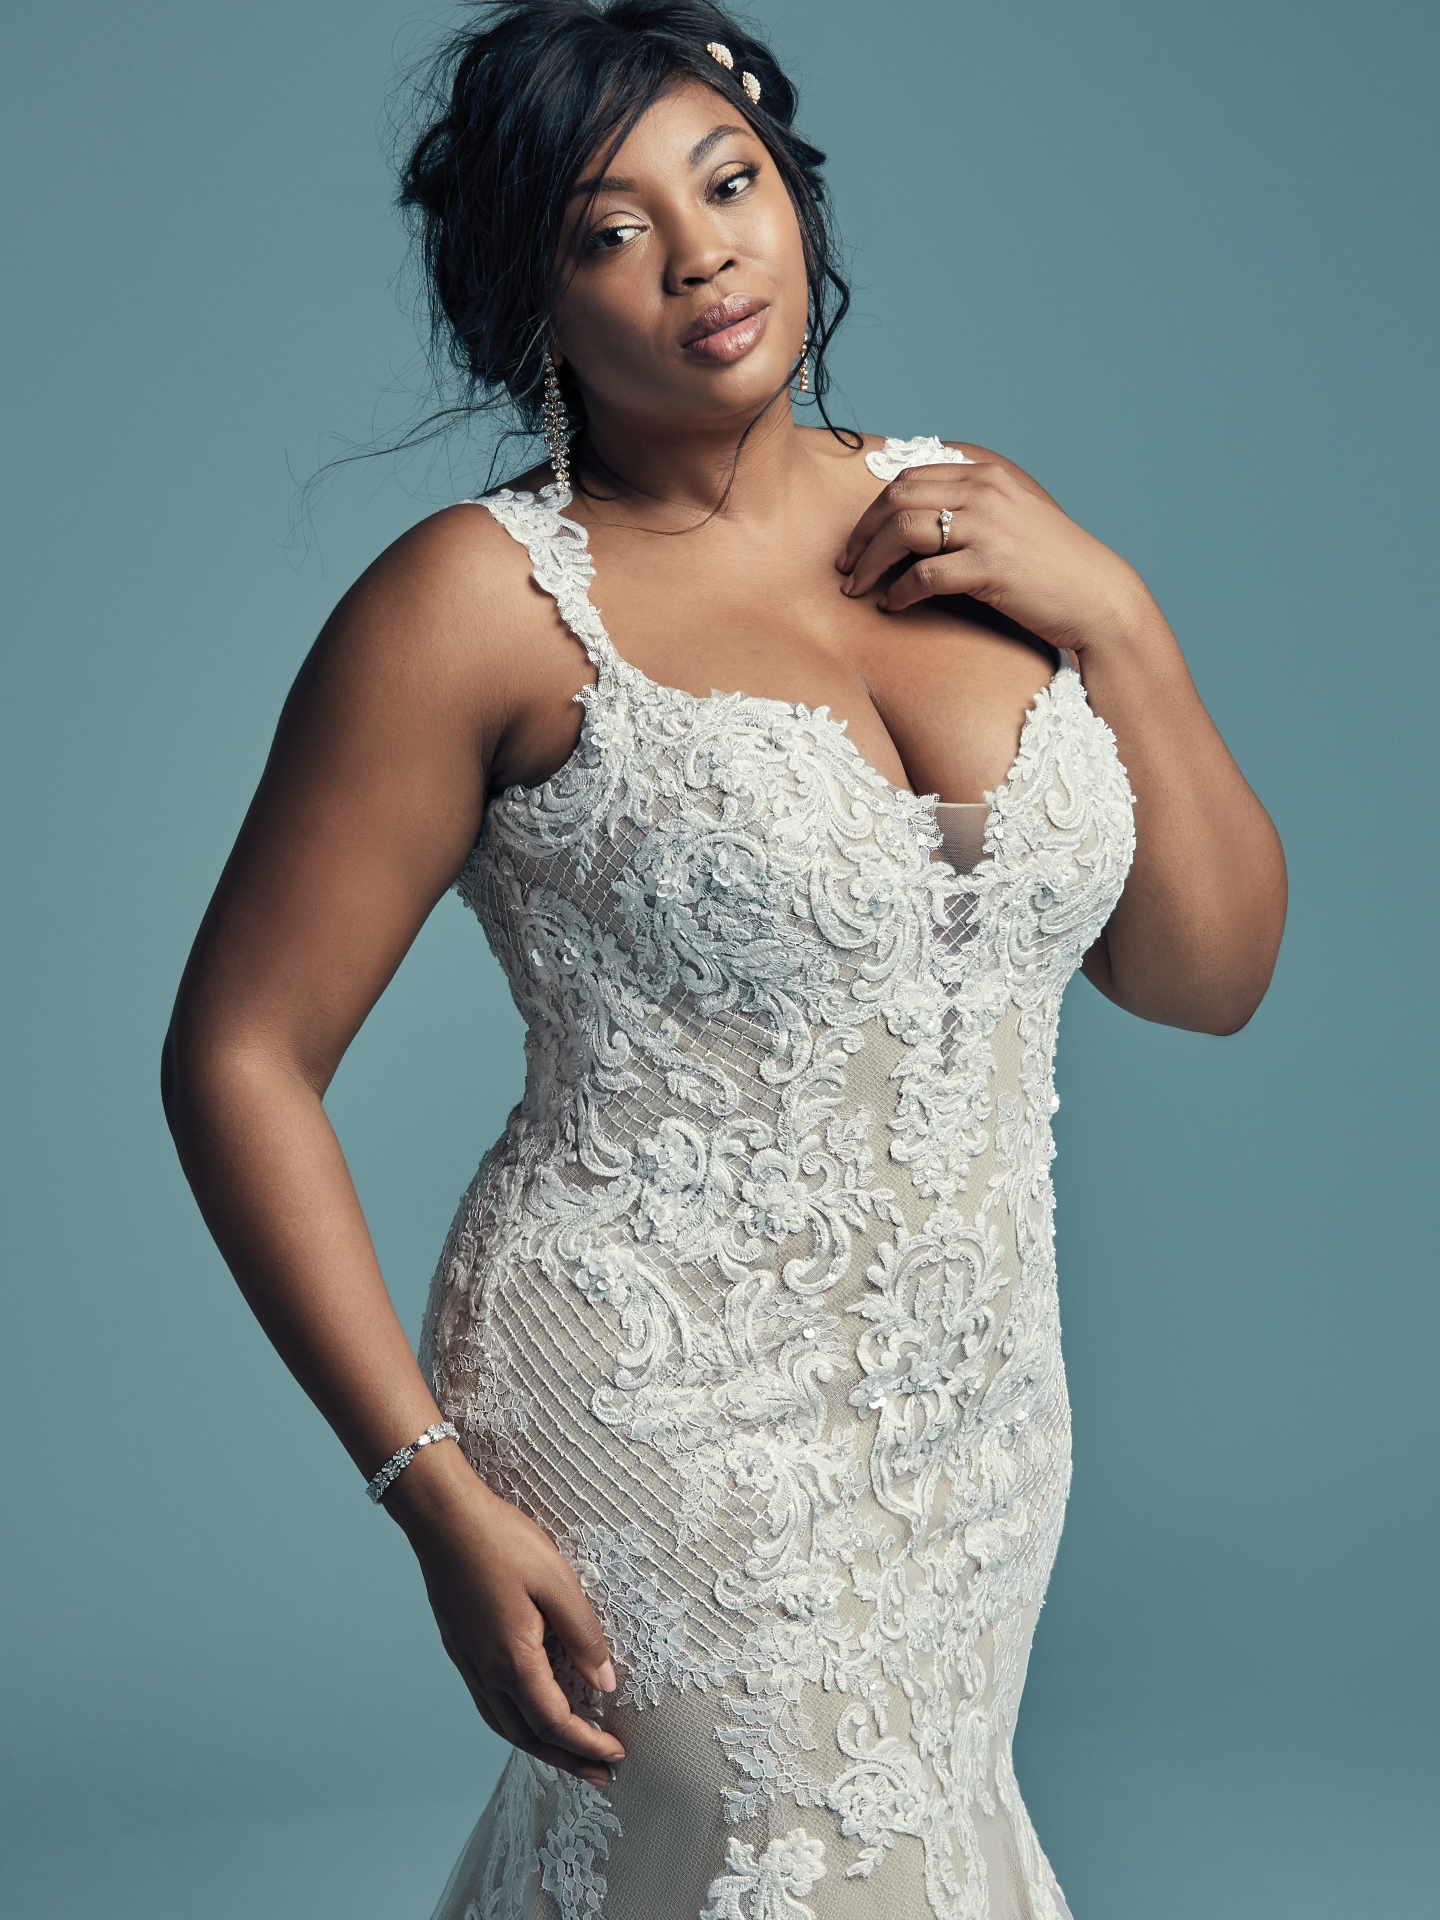 The Ultimate Guide to Wedding Gowns for Curvy Brides from Whitney of CurveGenius - Try the Abbie Lynette wedding dress by Maggie Sottero for your hourglass shape